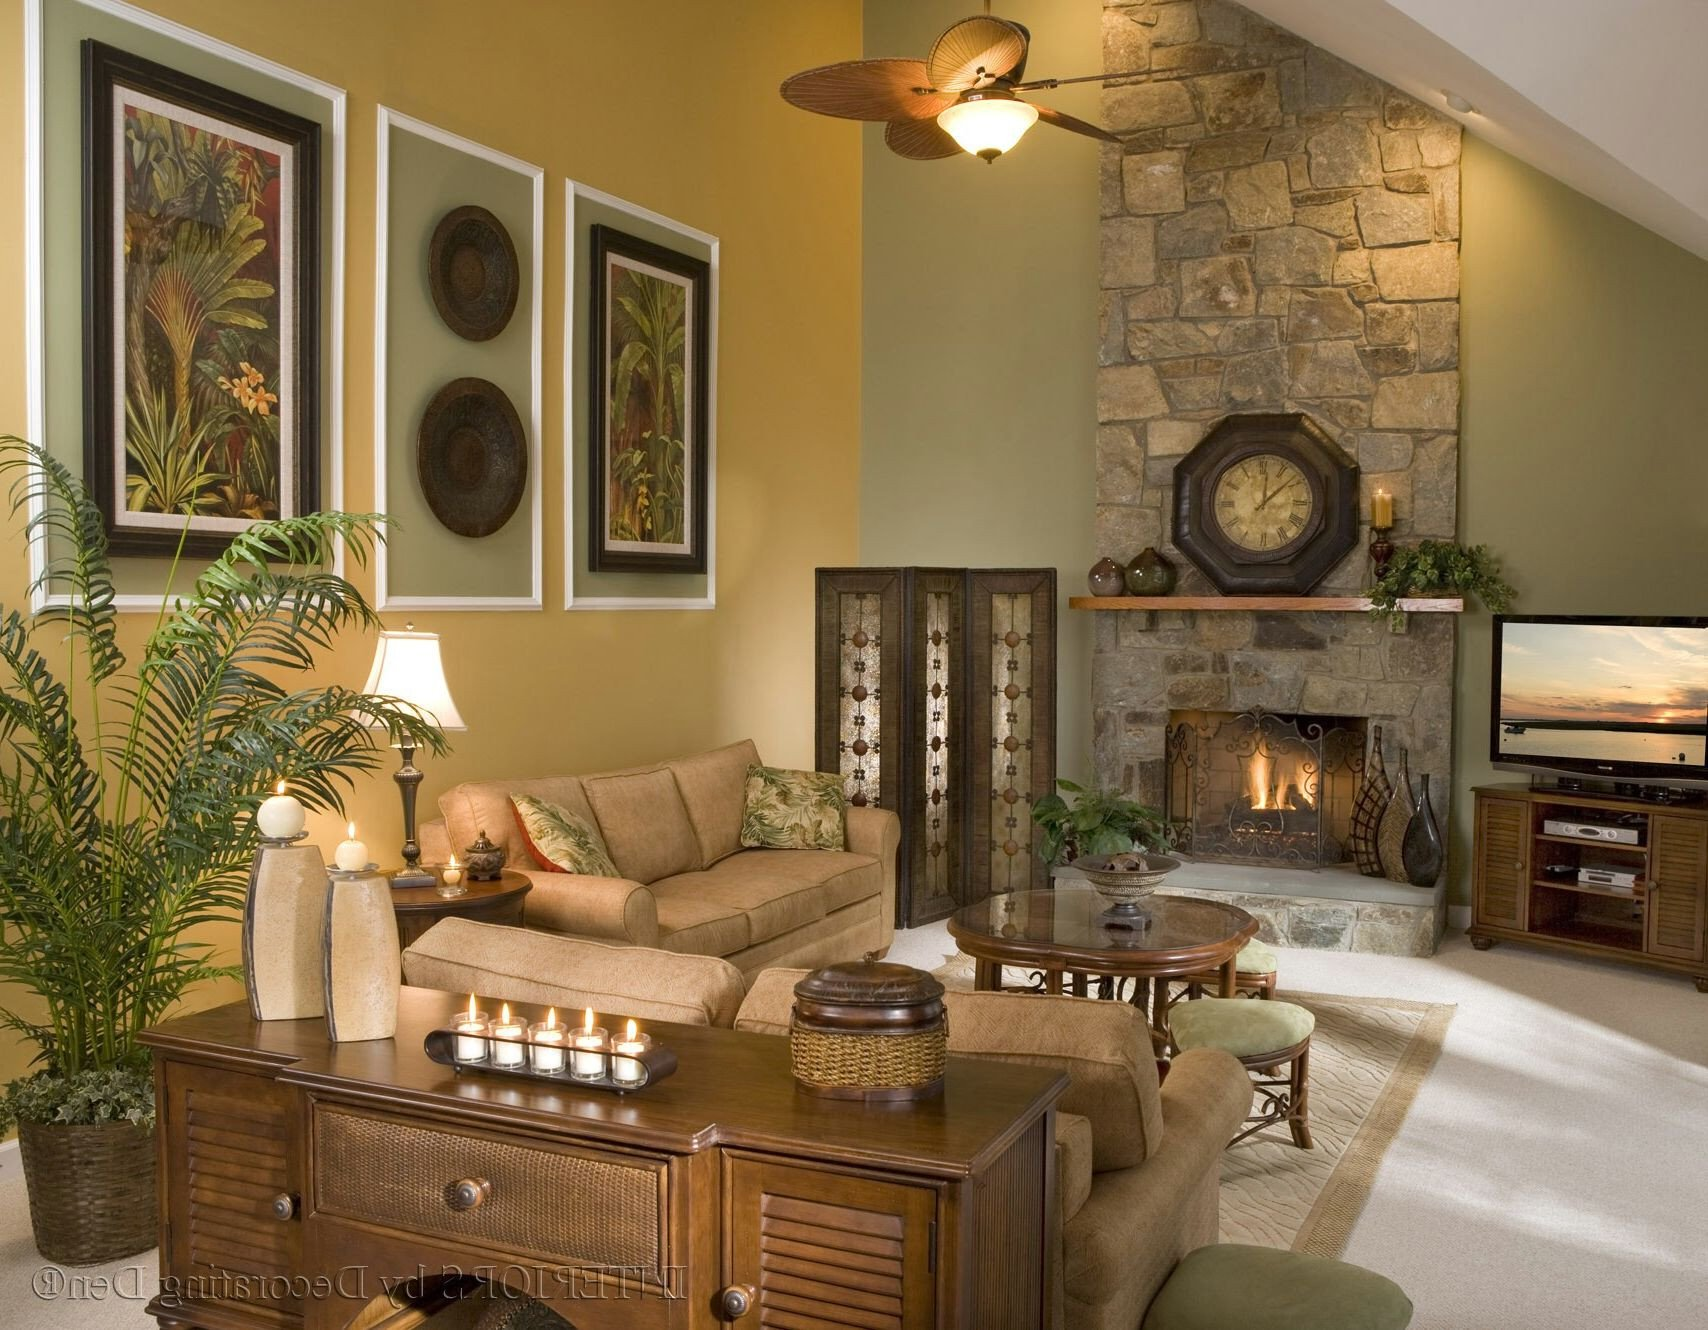 Wall Decor for Family Room New 38 Wall Decorating Ideas for Family Room Living Room Wall